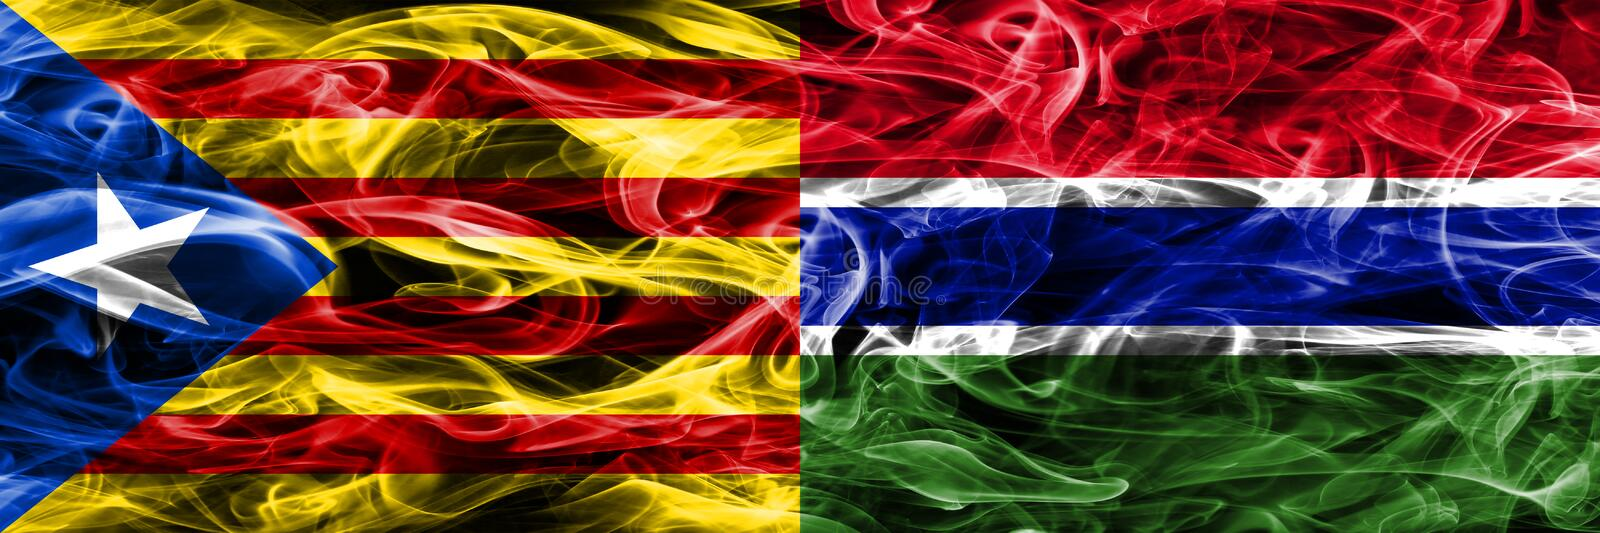 Catalonia vs Gambia copy smoke flags placed side by side. Thick colored silky smoke flags of Catalan and Gambia copy.  stock illustration